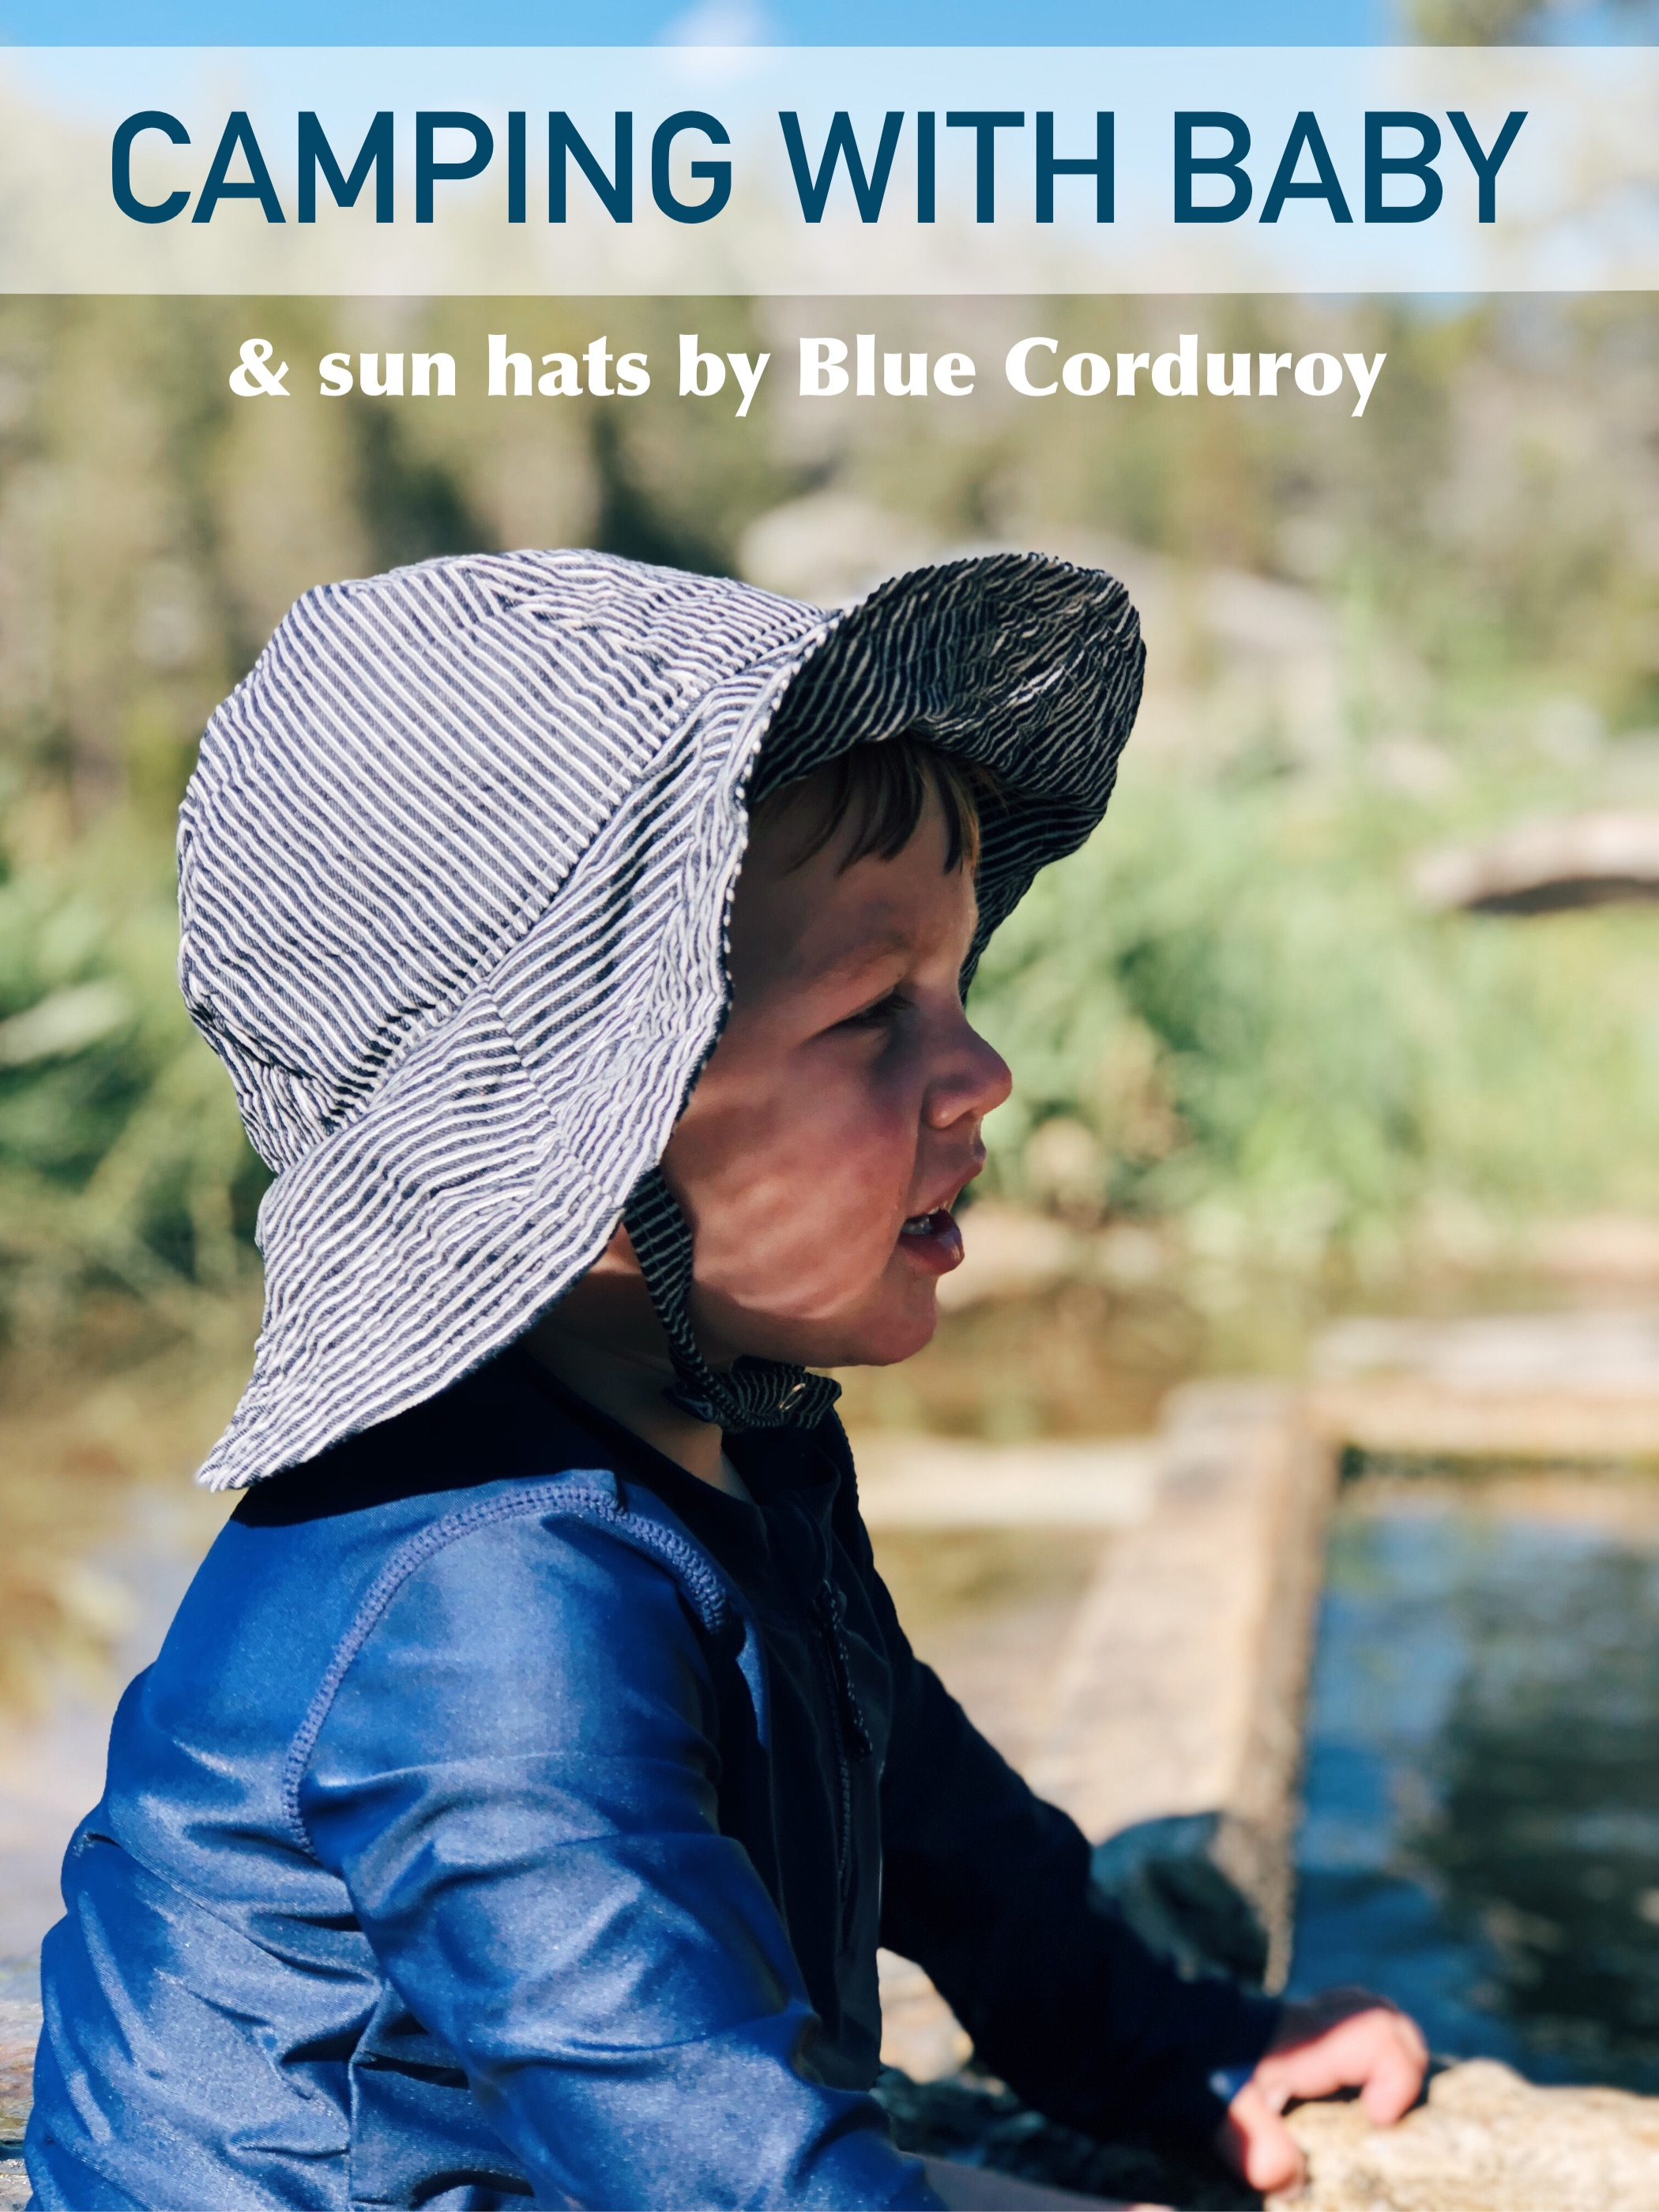 Camping with baby and sun hats by Blue Corduroy.